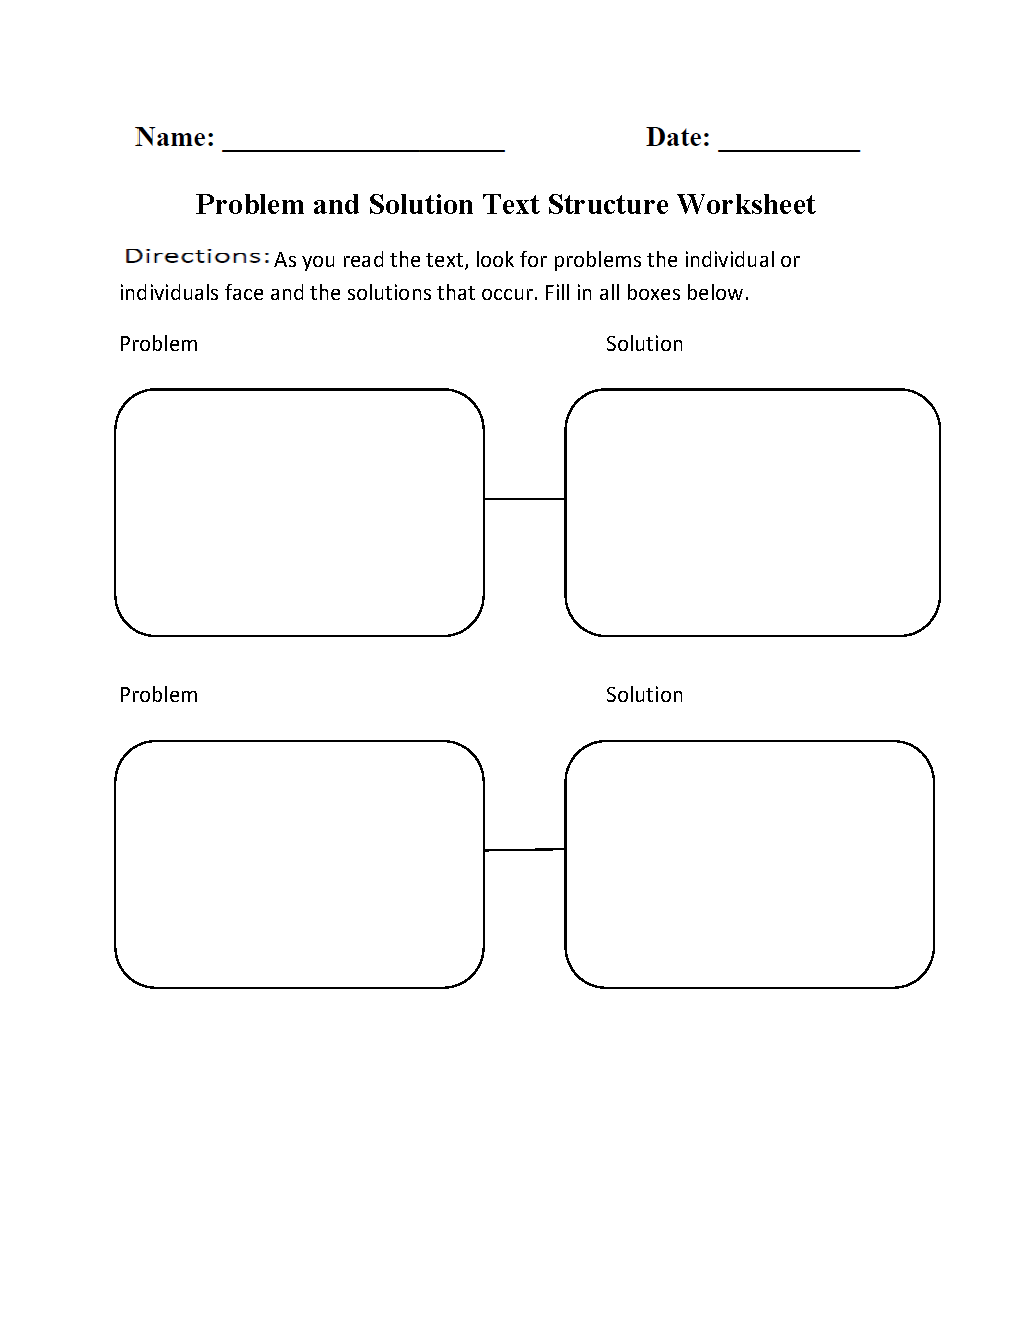 Text Structure Worksheets Problem And Solution Text Structure